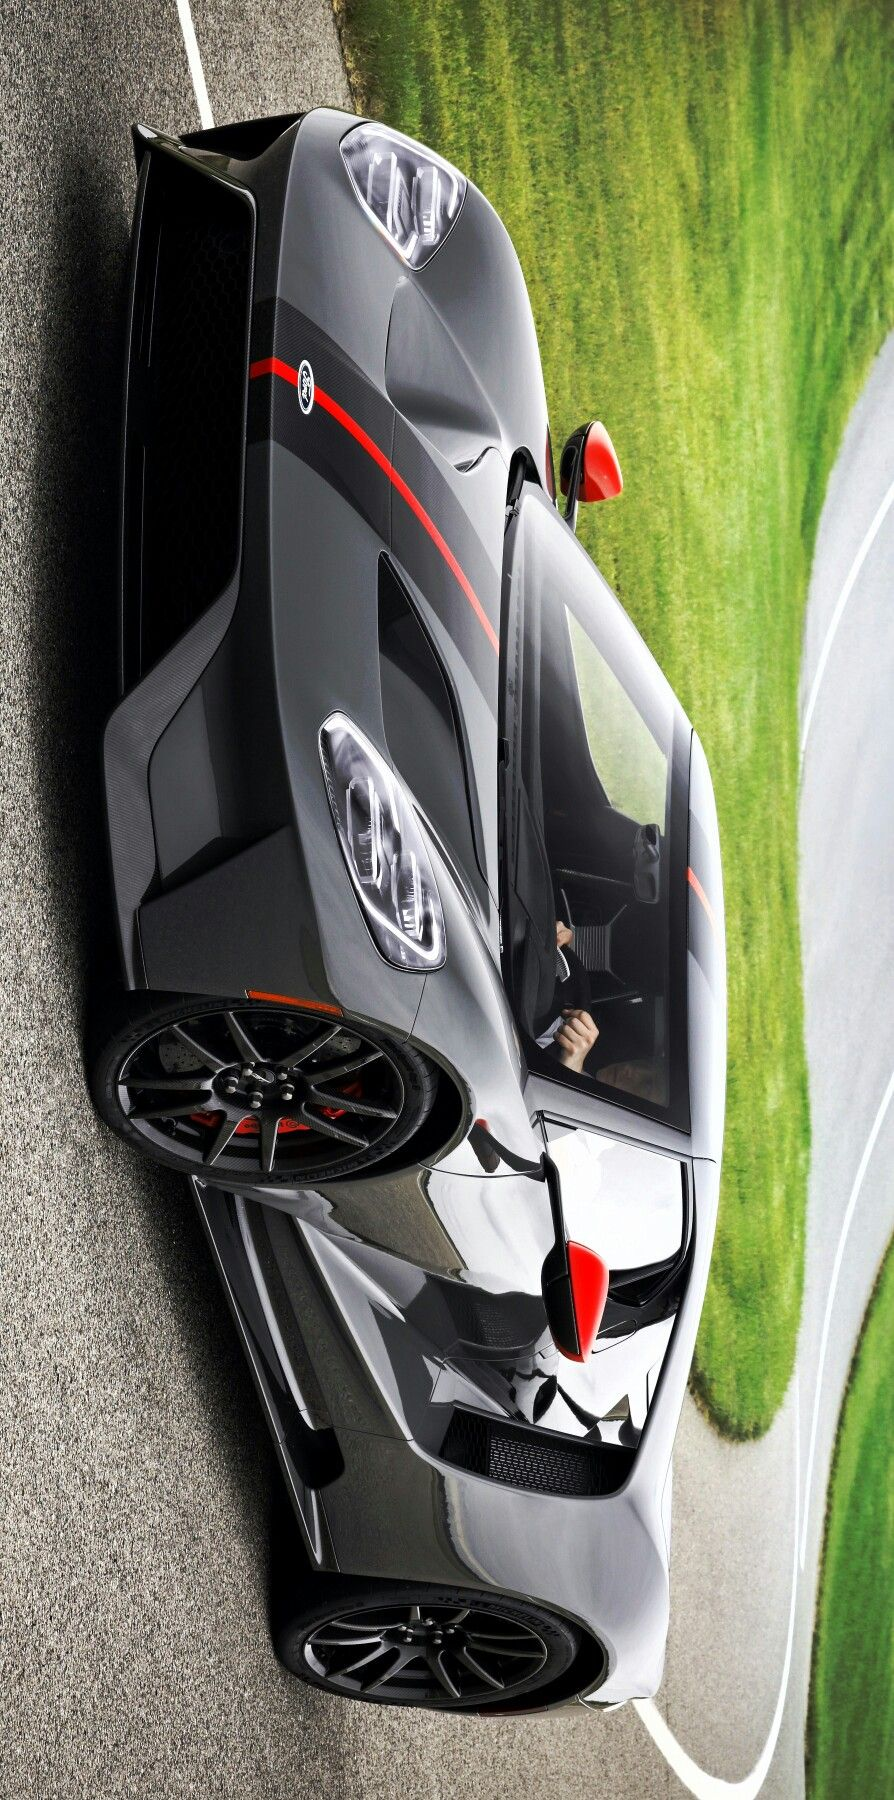 2019 Ford Gt Carbon Series Image Enhancements Are By Vonmonski Ford Gt Super Cars Sport Cars